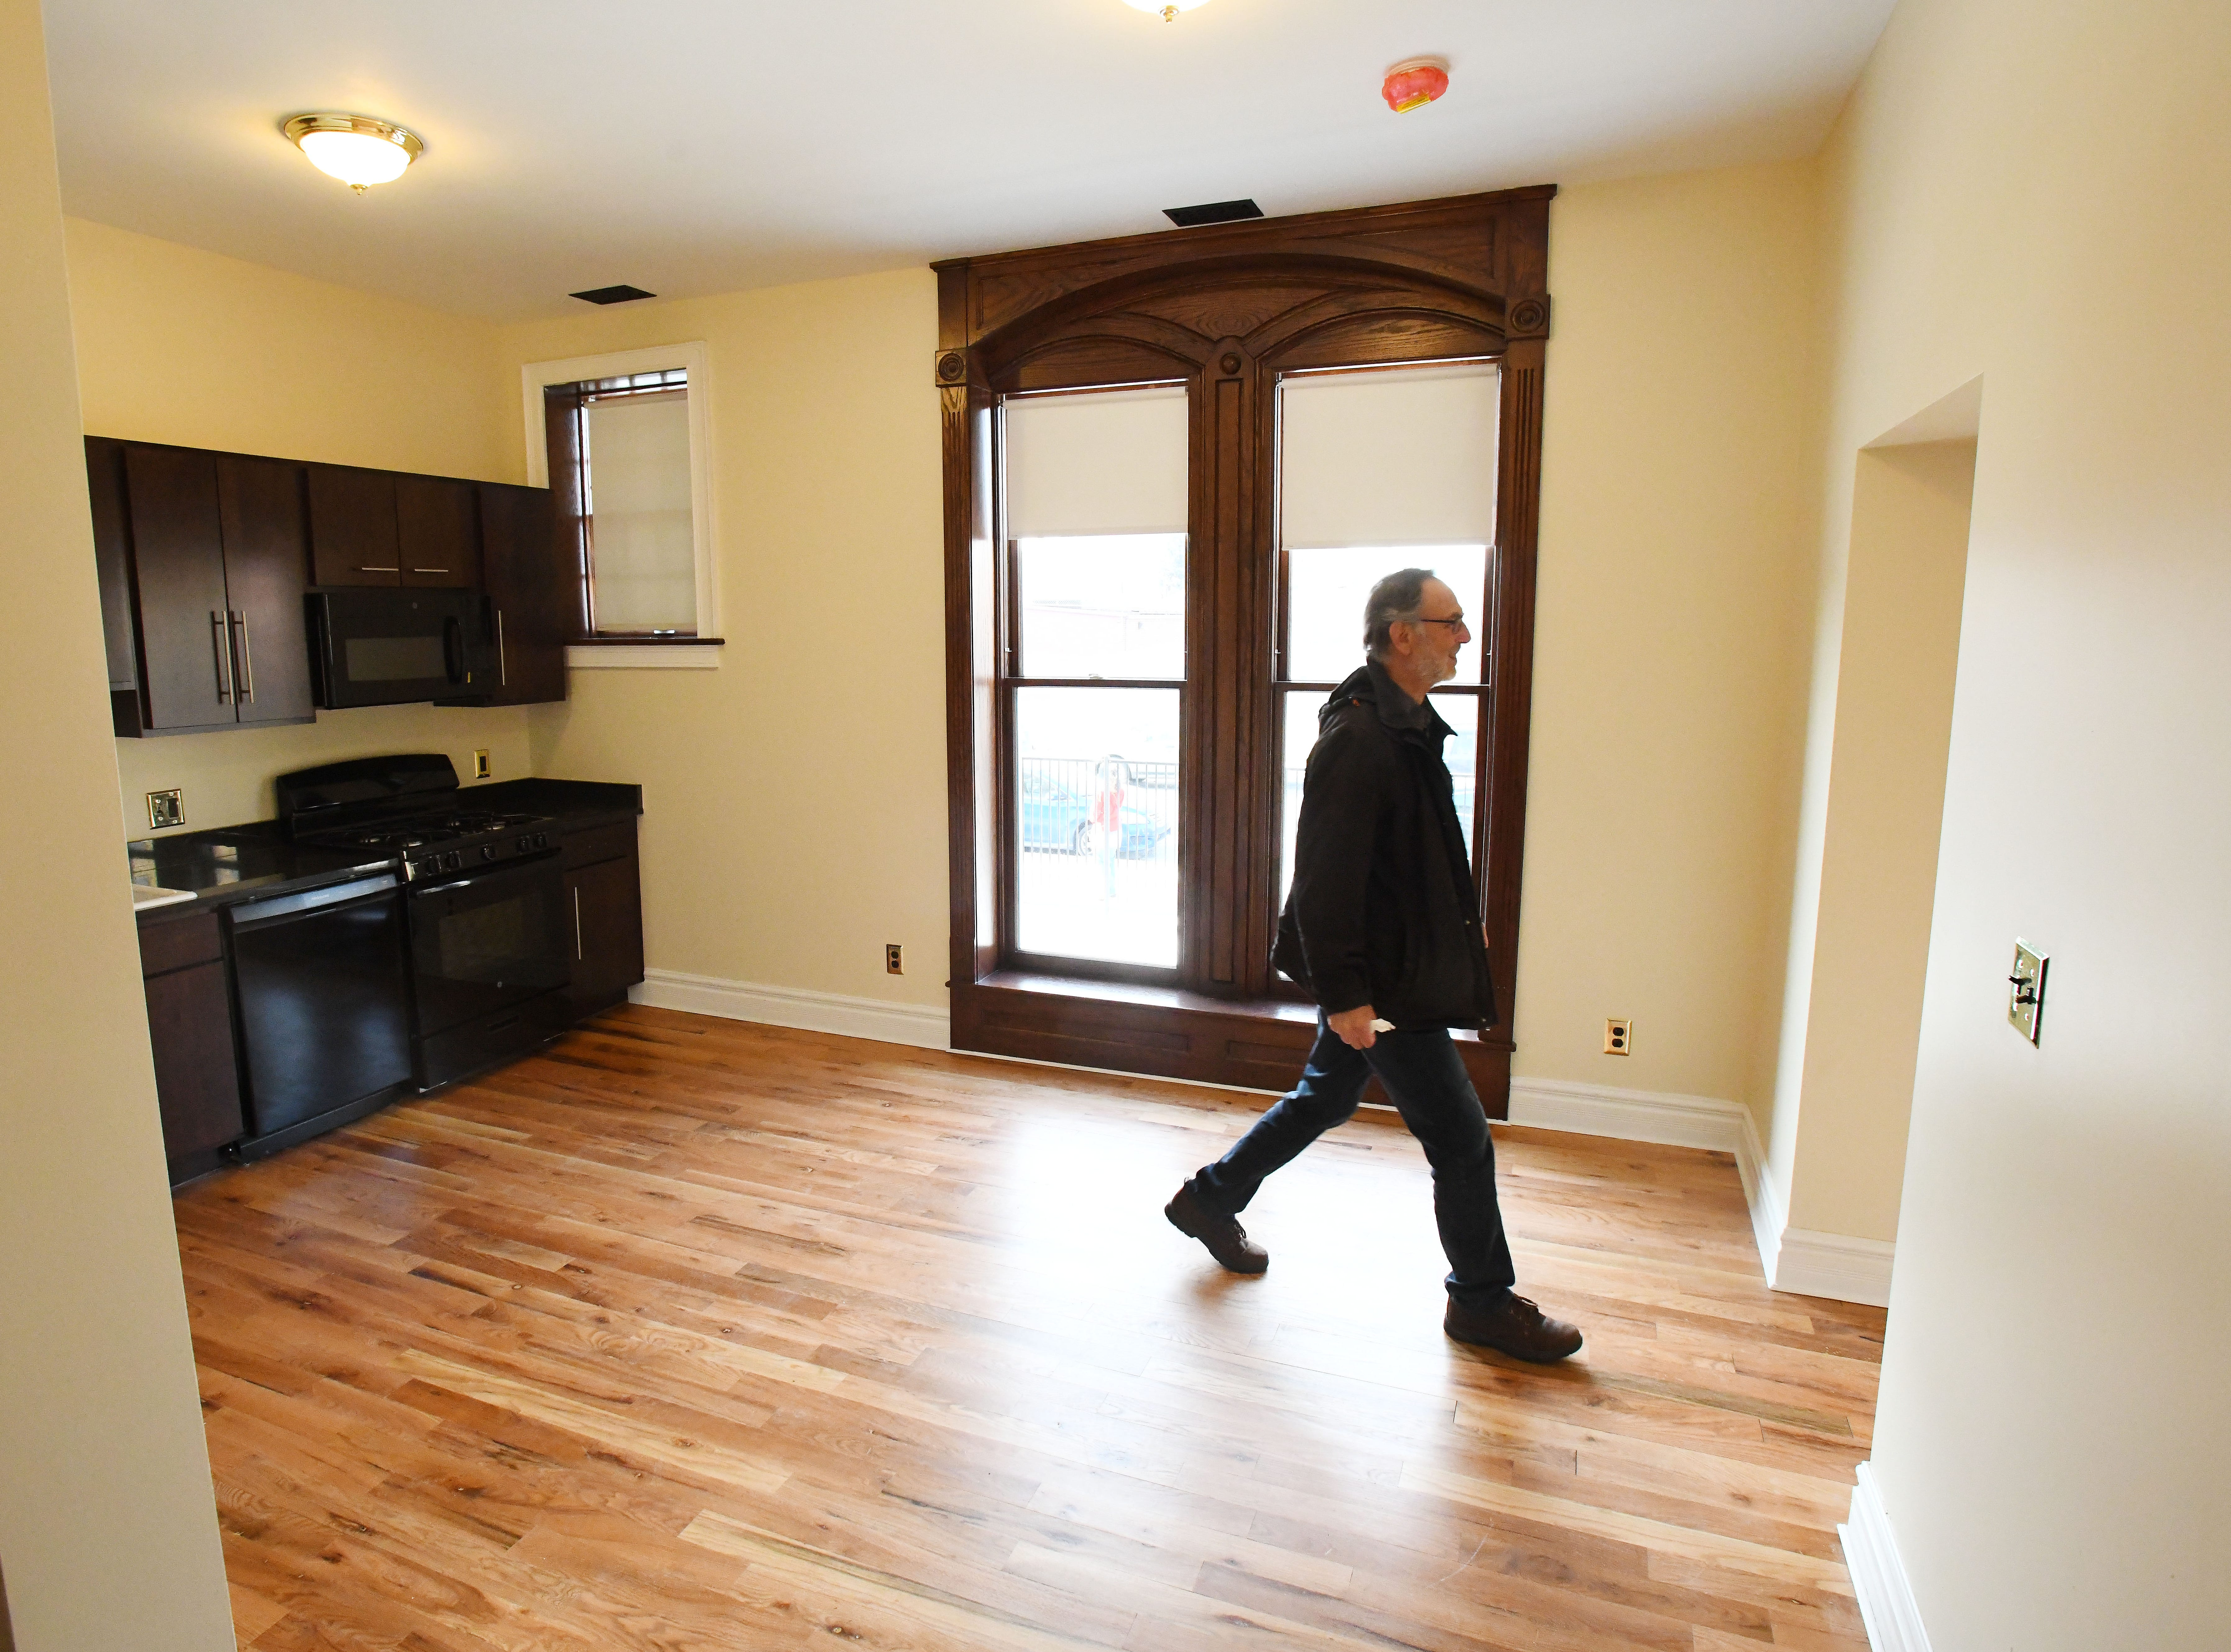 Francis Shor wonders through a 1st floor apartment at the historic Scott Mansion which has been renovated into market-rate rental apartments in the Cass Corridor.